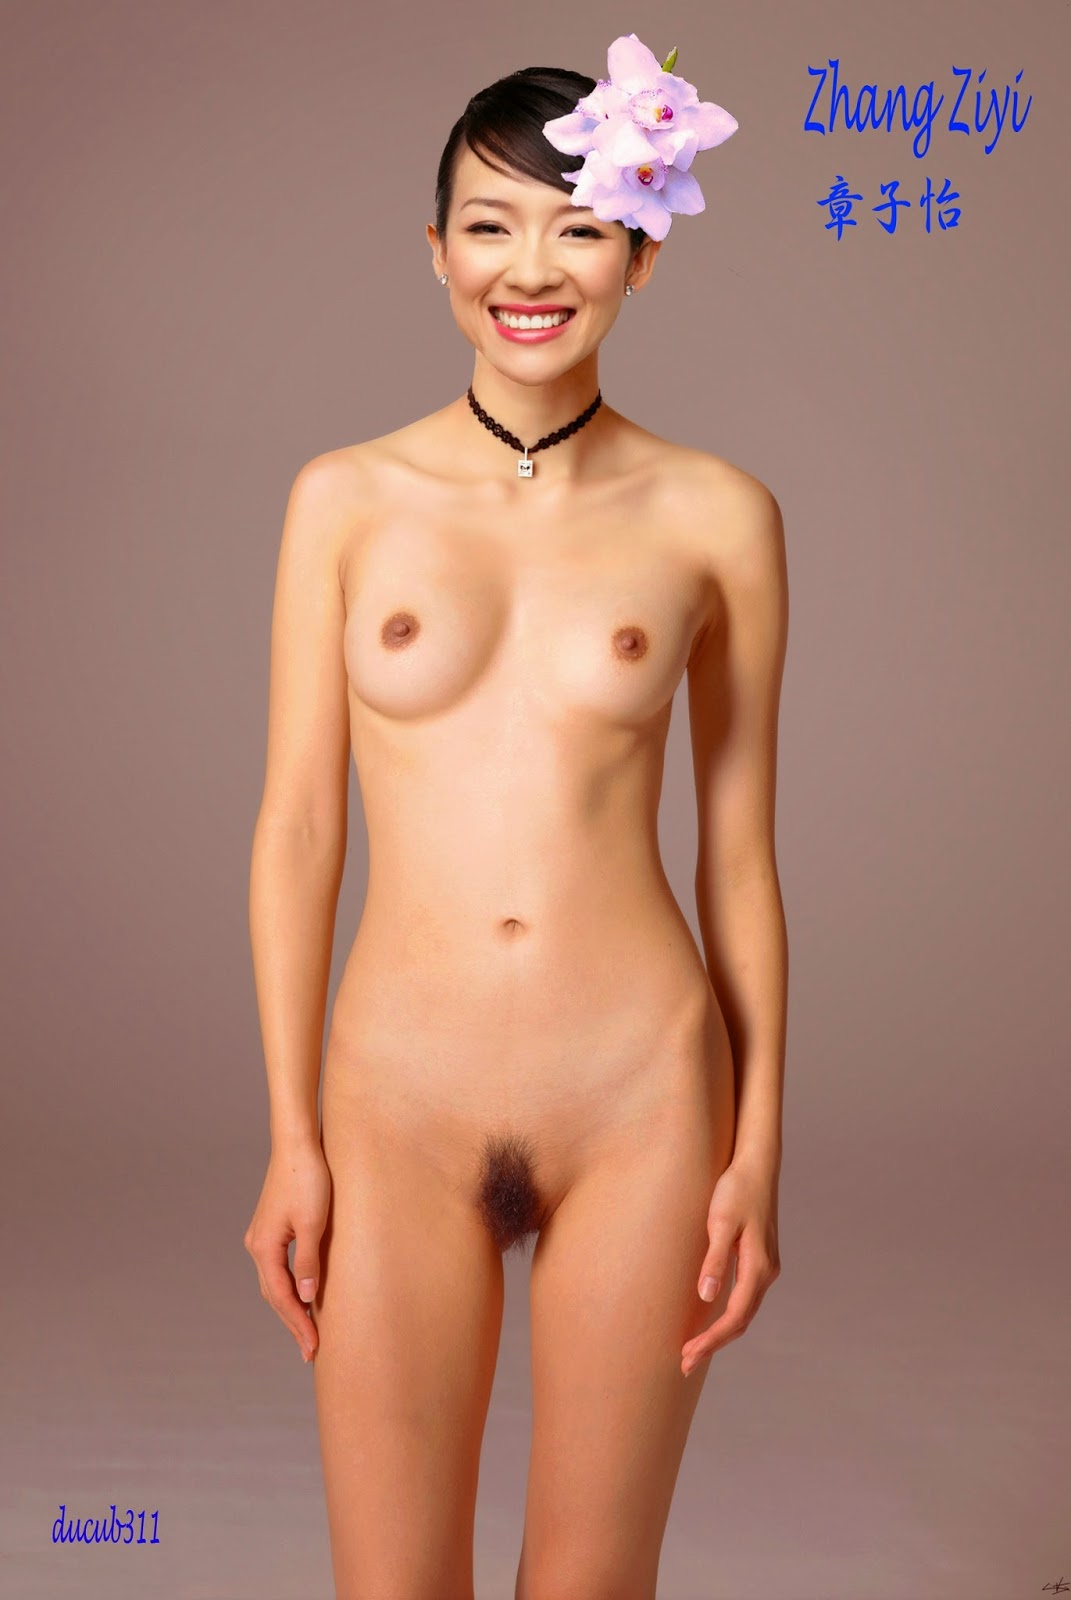 Very grateful Hot asian actresses naked was